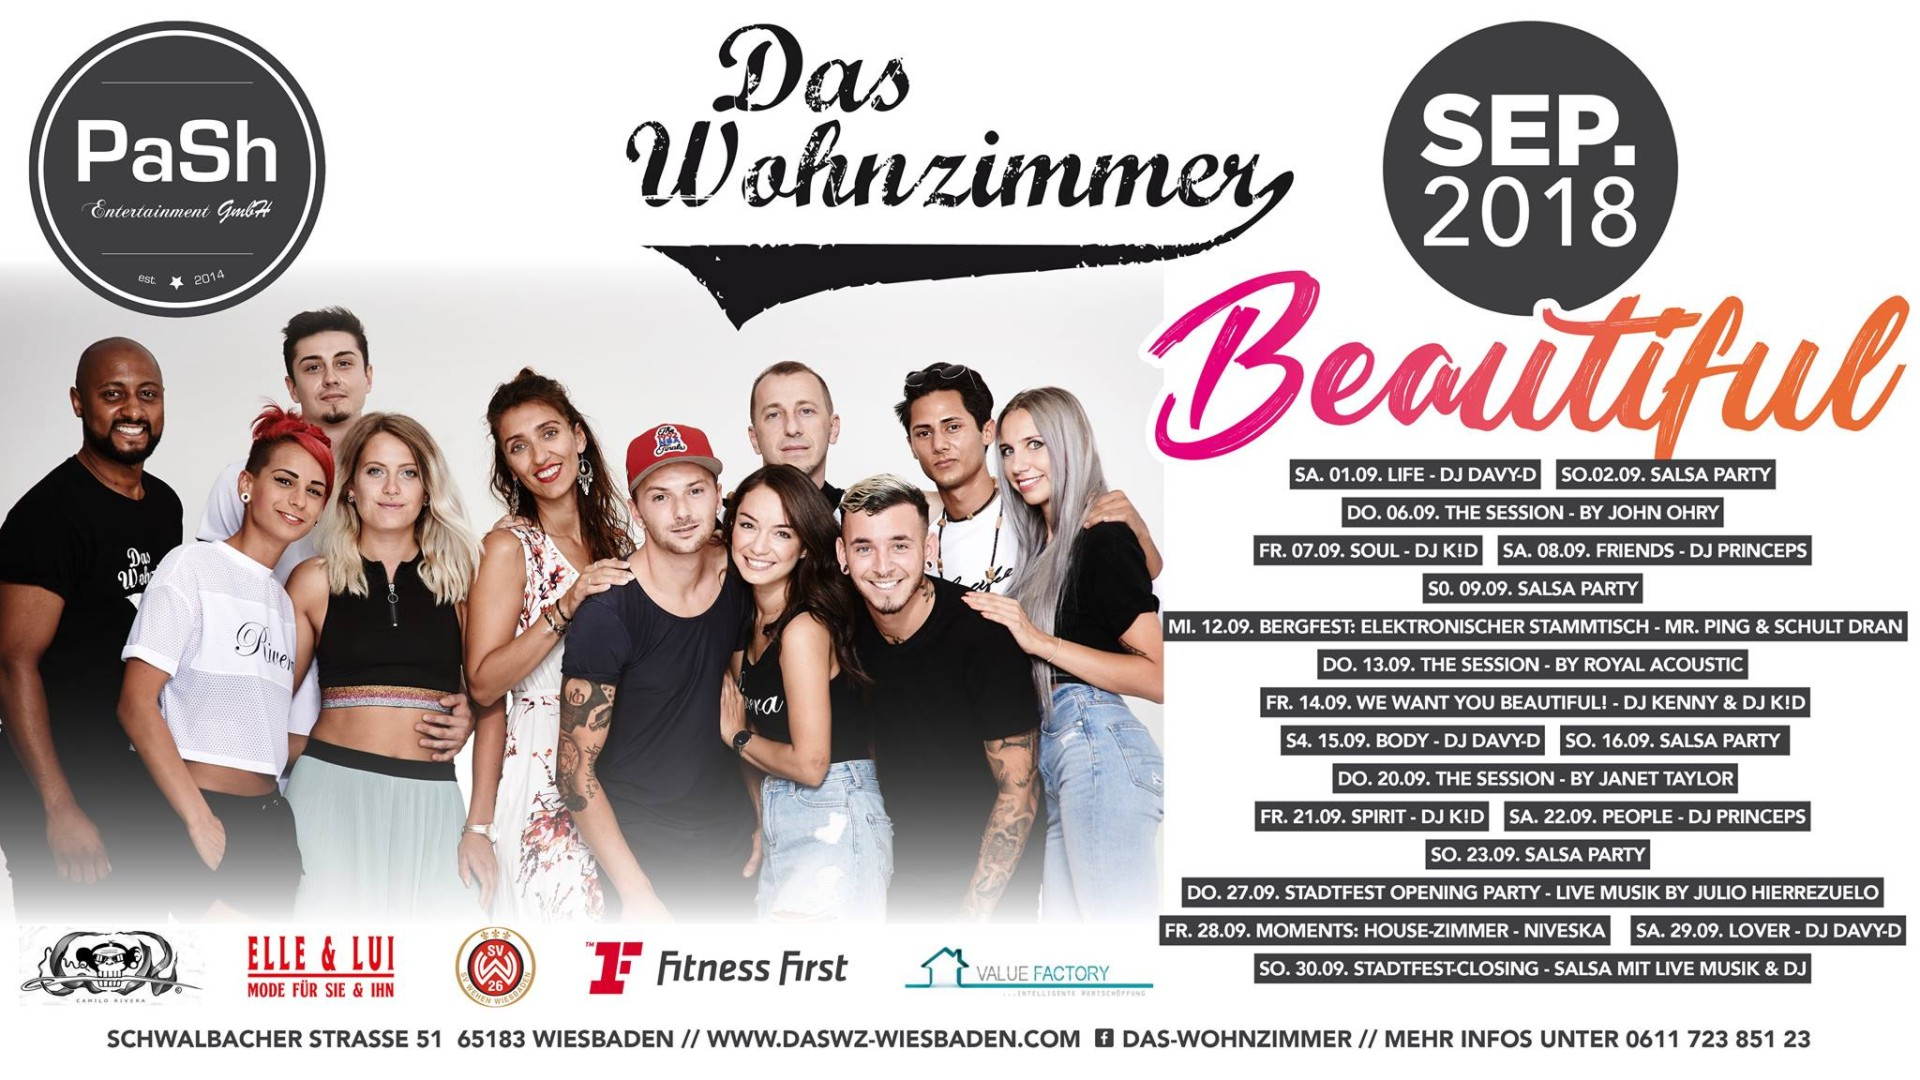 15092018 Beautiful Body Party With Dj Davy D Das Wohnzimmer